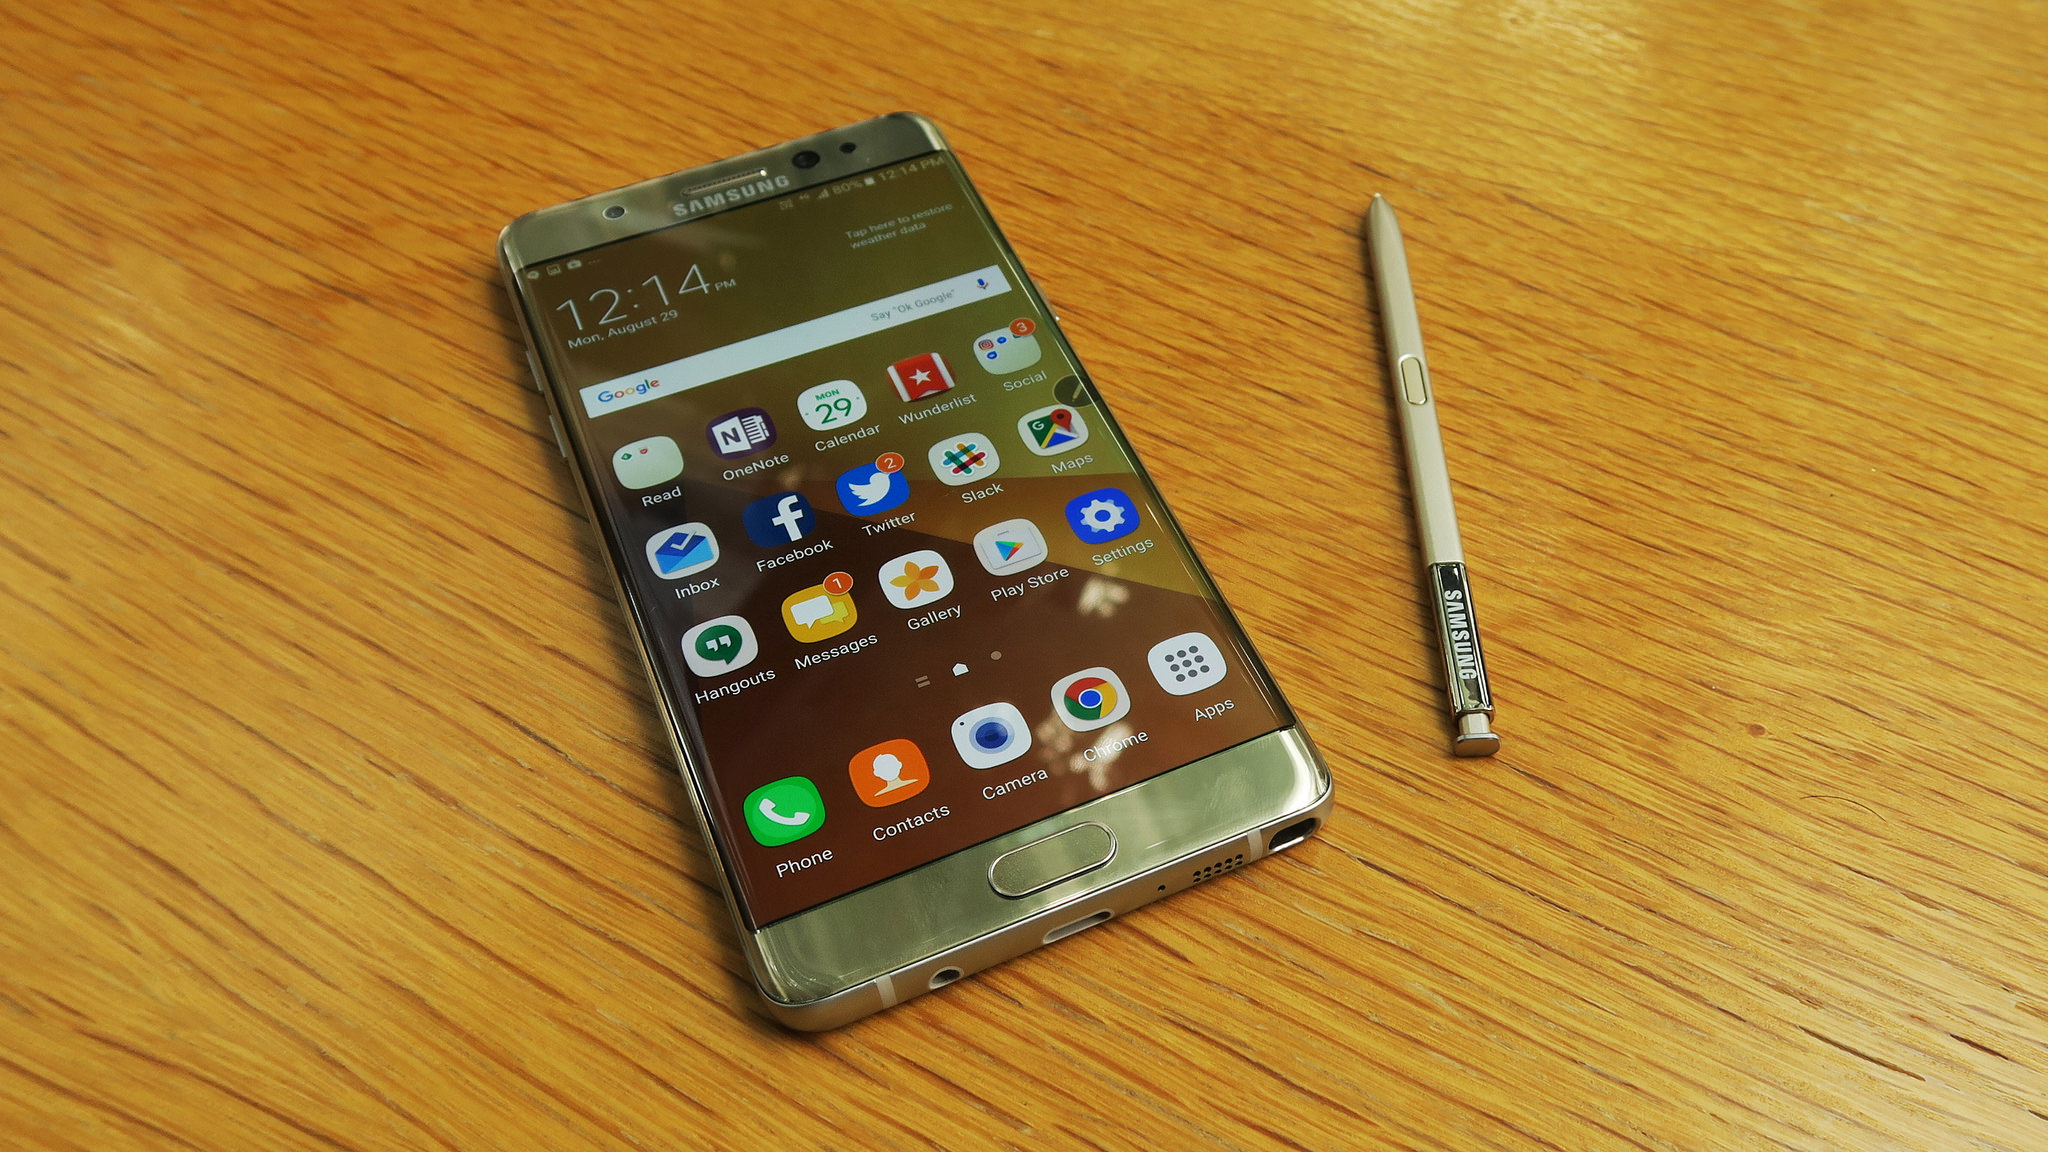 An image of a Samsung Galaxy Note 7 sits on a wooden table placed net to an pressure sensitive S (stylus) pen